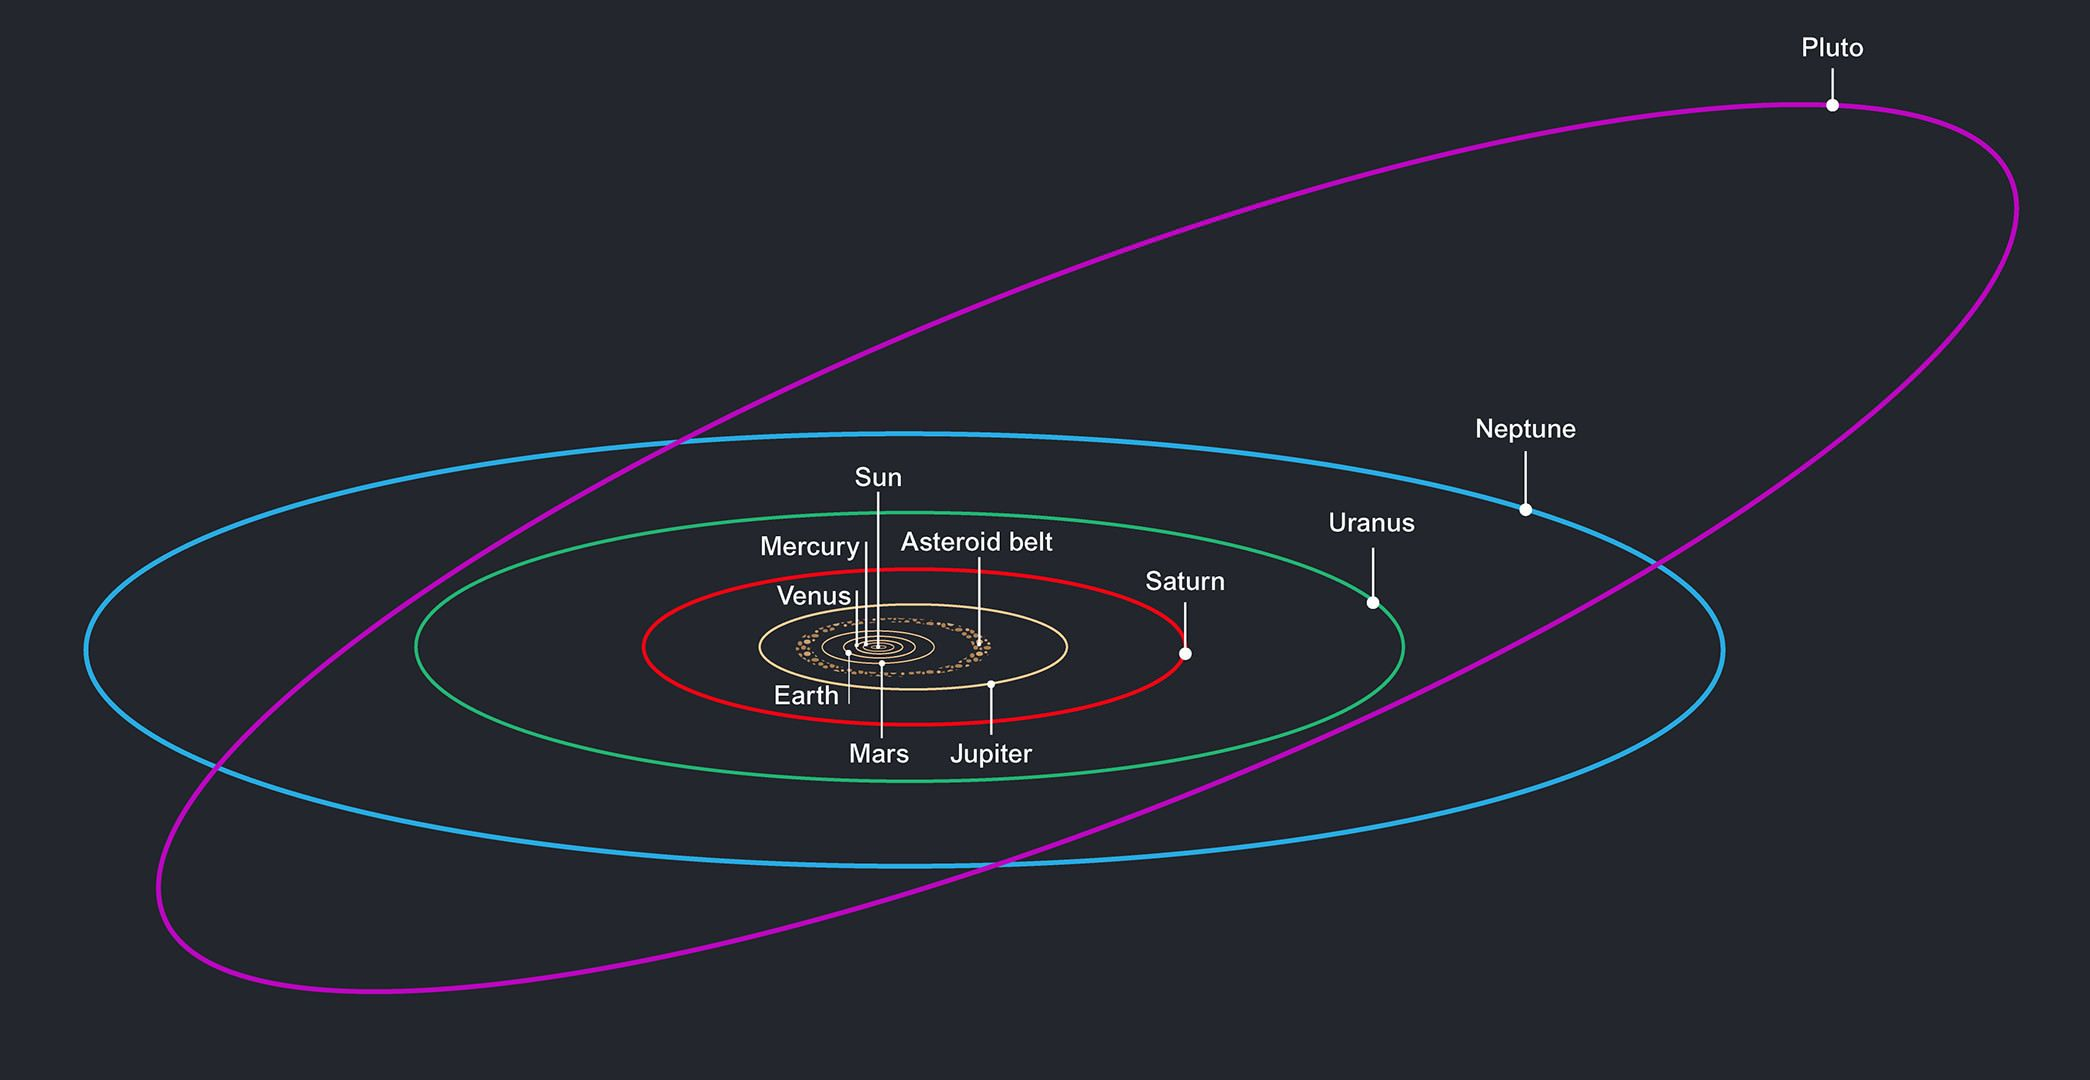 pluto orbit - Google Search | Astronomy | Our solar system ...